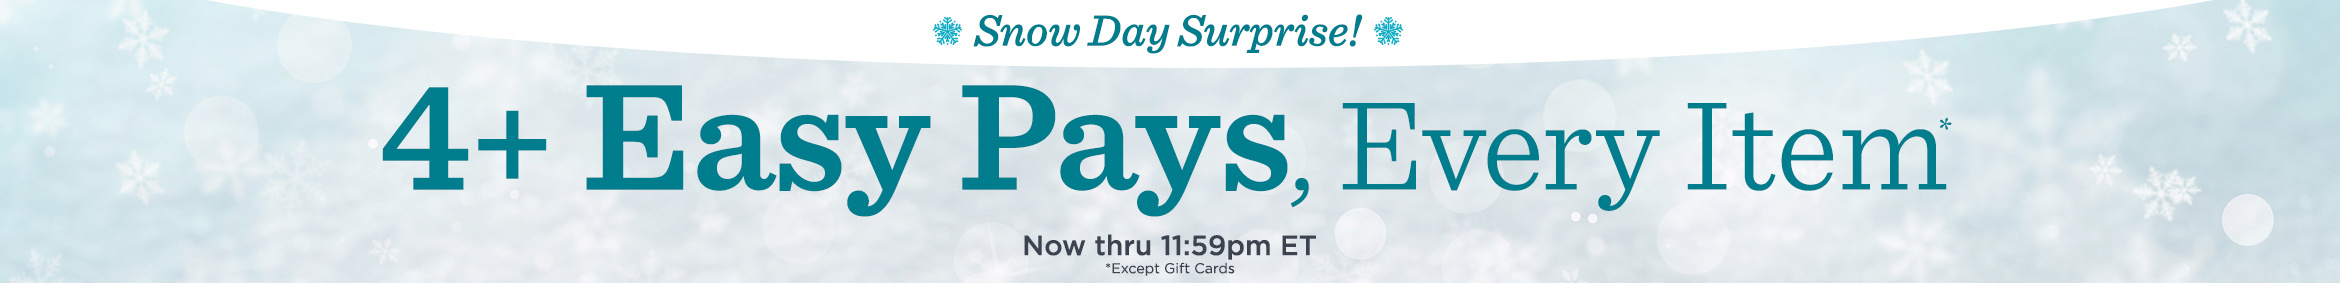 Snow Day Surprise! Now thru 11:59pm ET! 4+ Easy Pays, Every Item Except Gift Cards